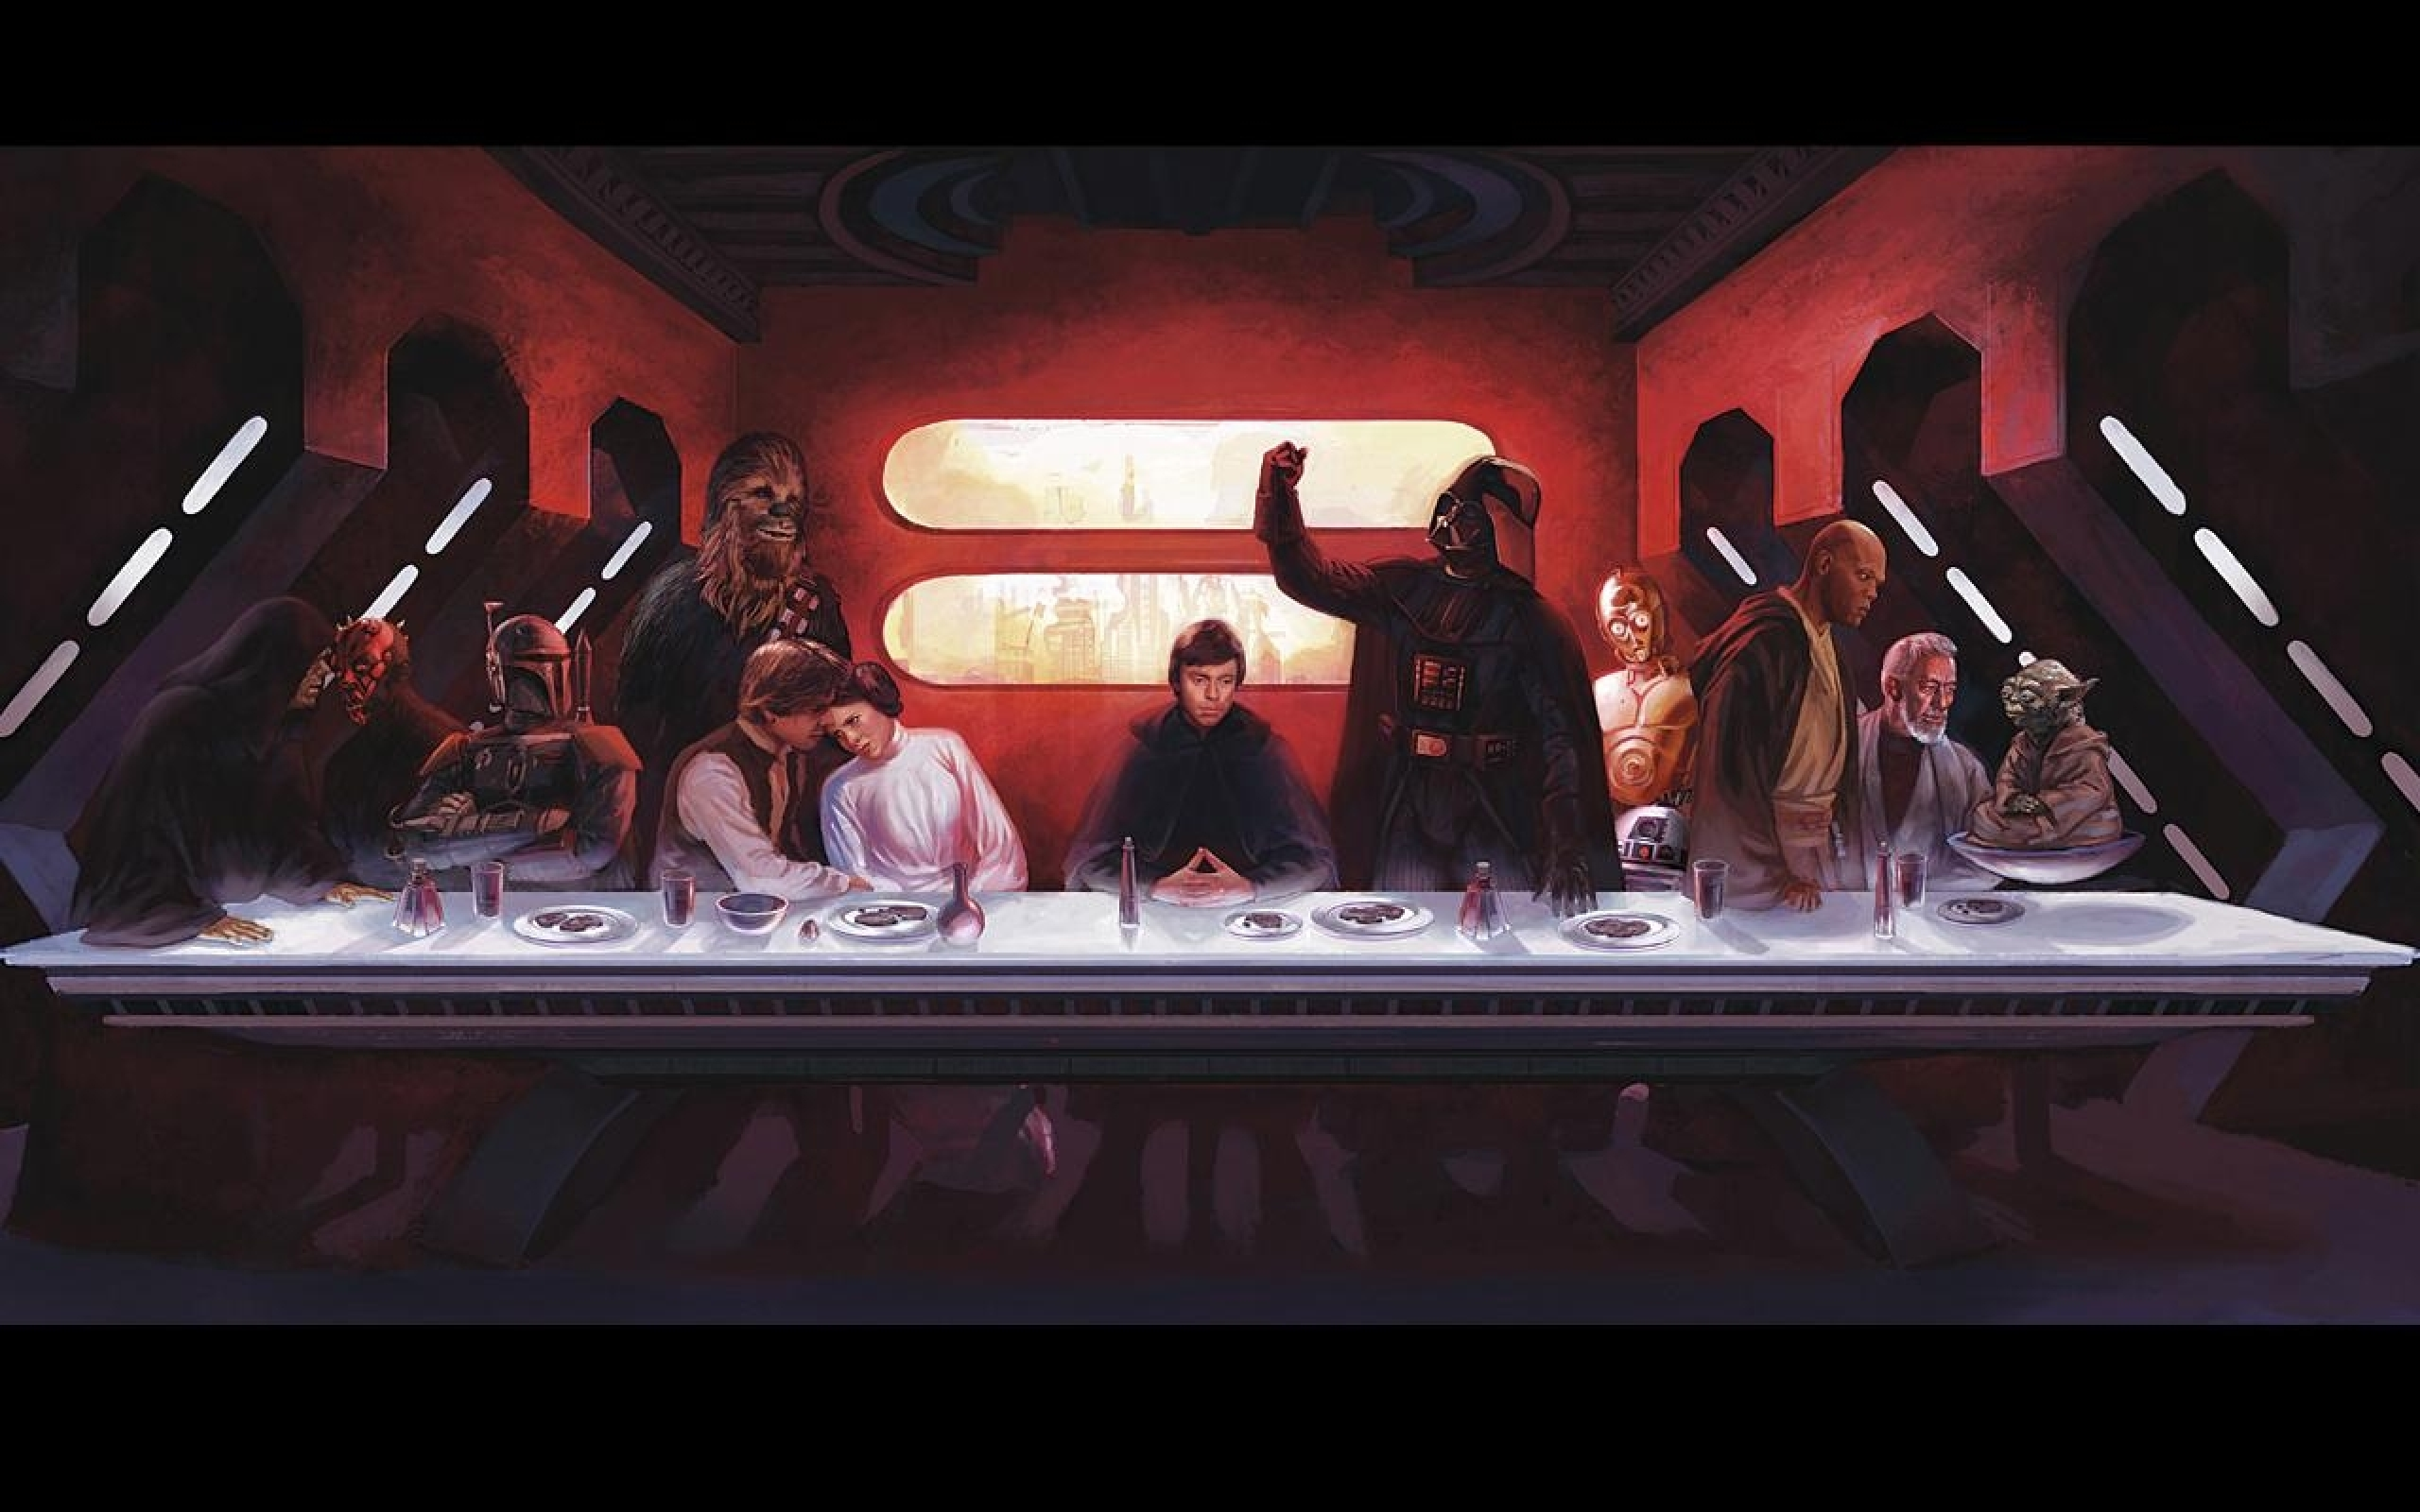 star_wars_last_supper_1280x800_wallpaper_Wallpaper_2560x1600_www.wallpaperswa.com